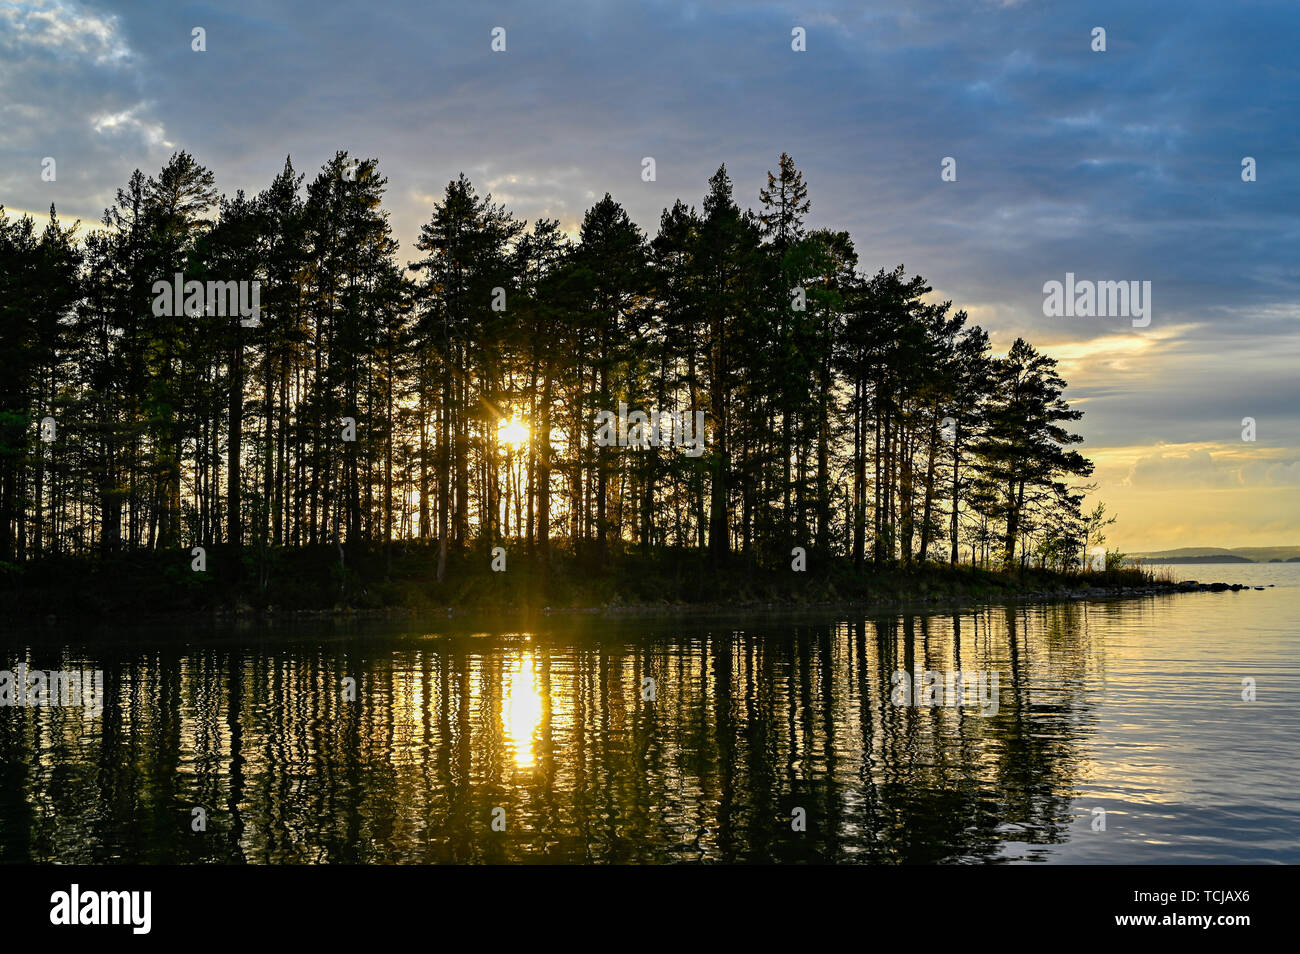 calm water and a nice sunset in Motala Sweden may 2019 - Stock Image